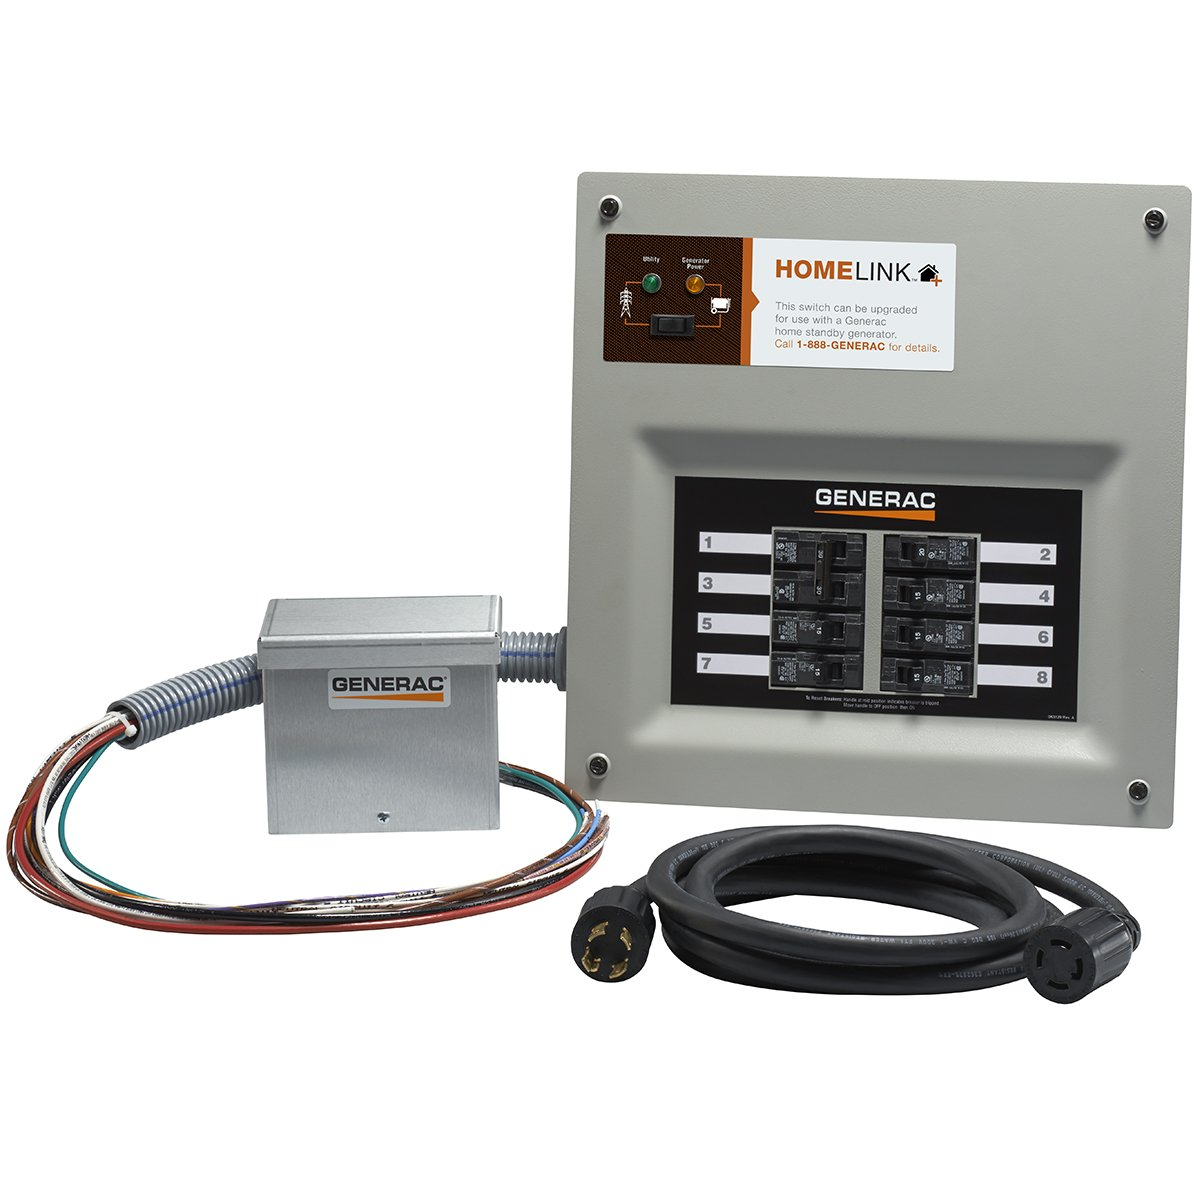 Generac 6854 Home Link Upgradeable 30 Amp Transfer Switch Kit with 10' Cord and Aluminum Power Inlet Box by Generac